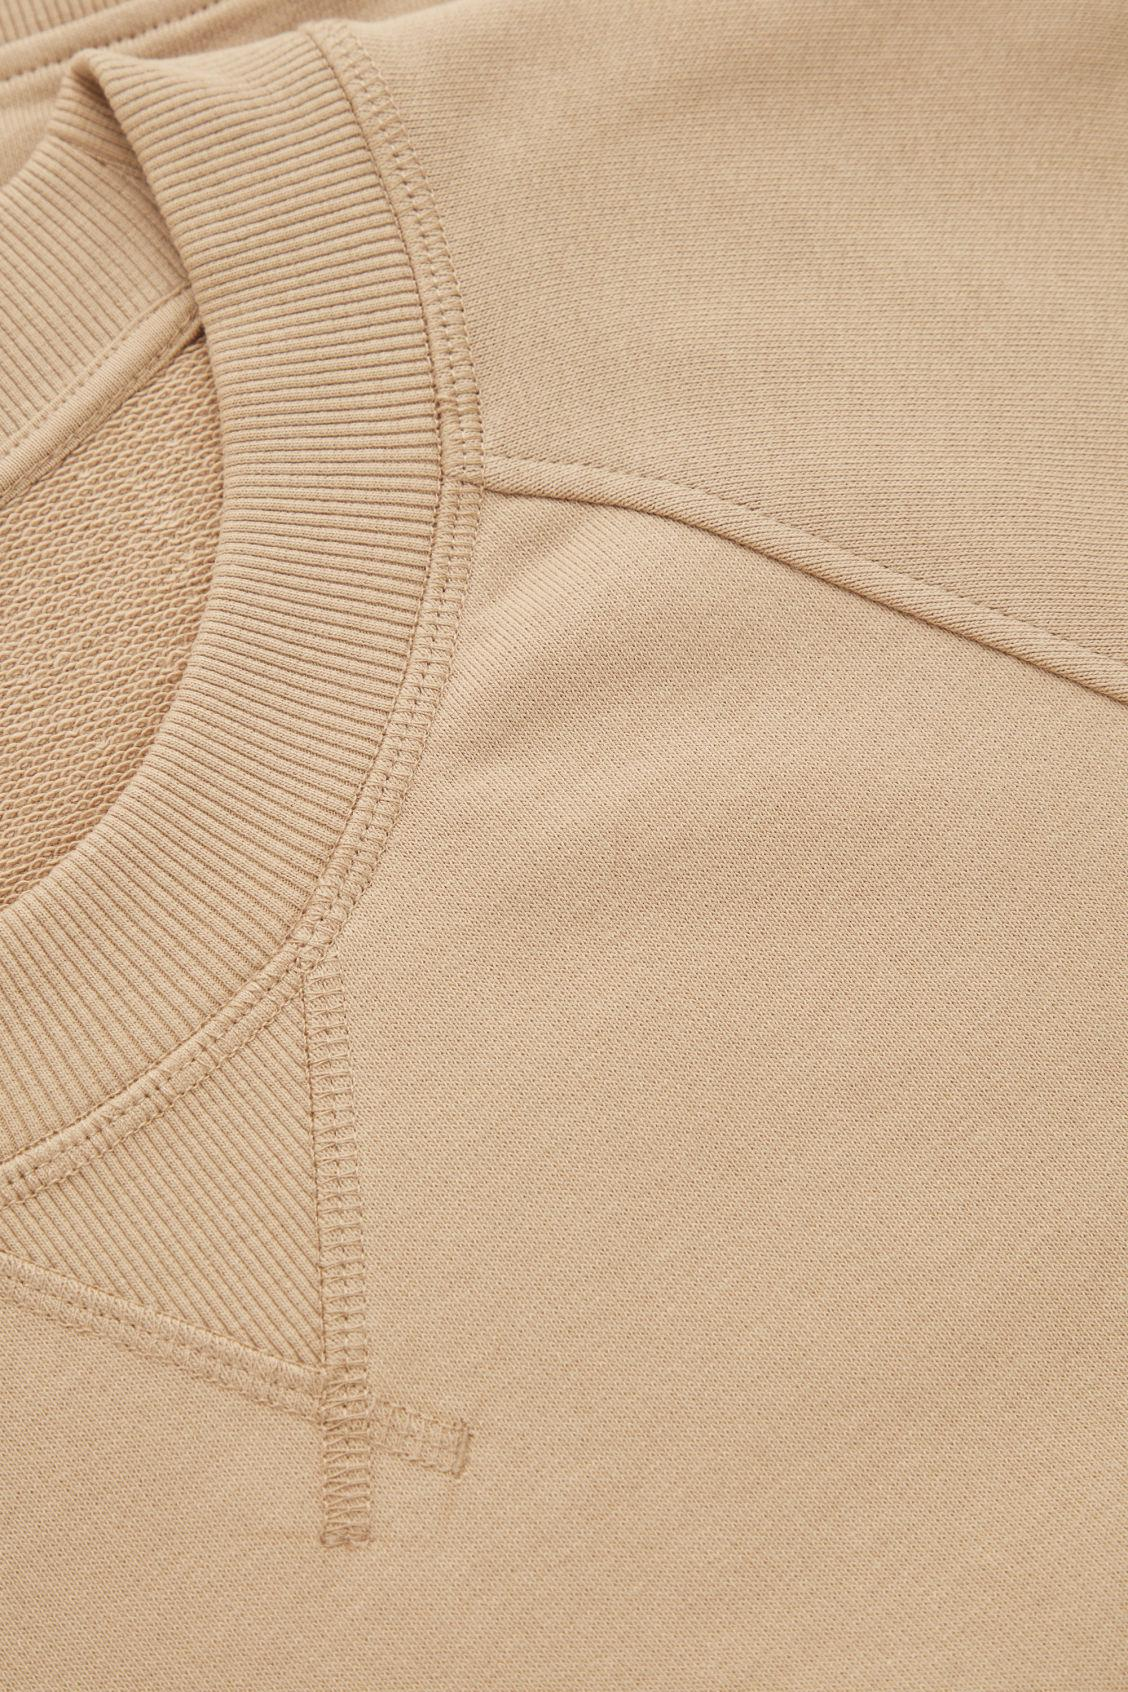 RELAXED-FIT TERRY SWEATSHIRT 7